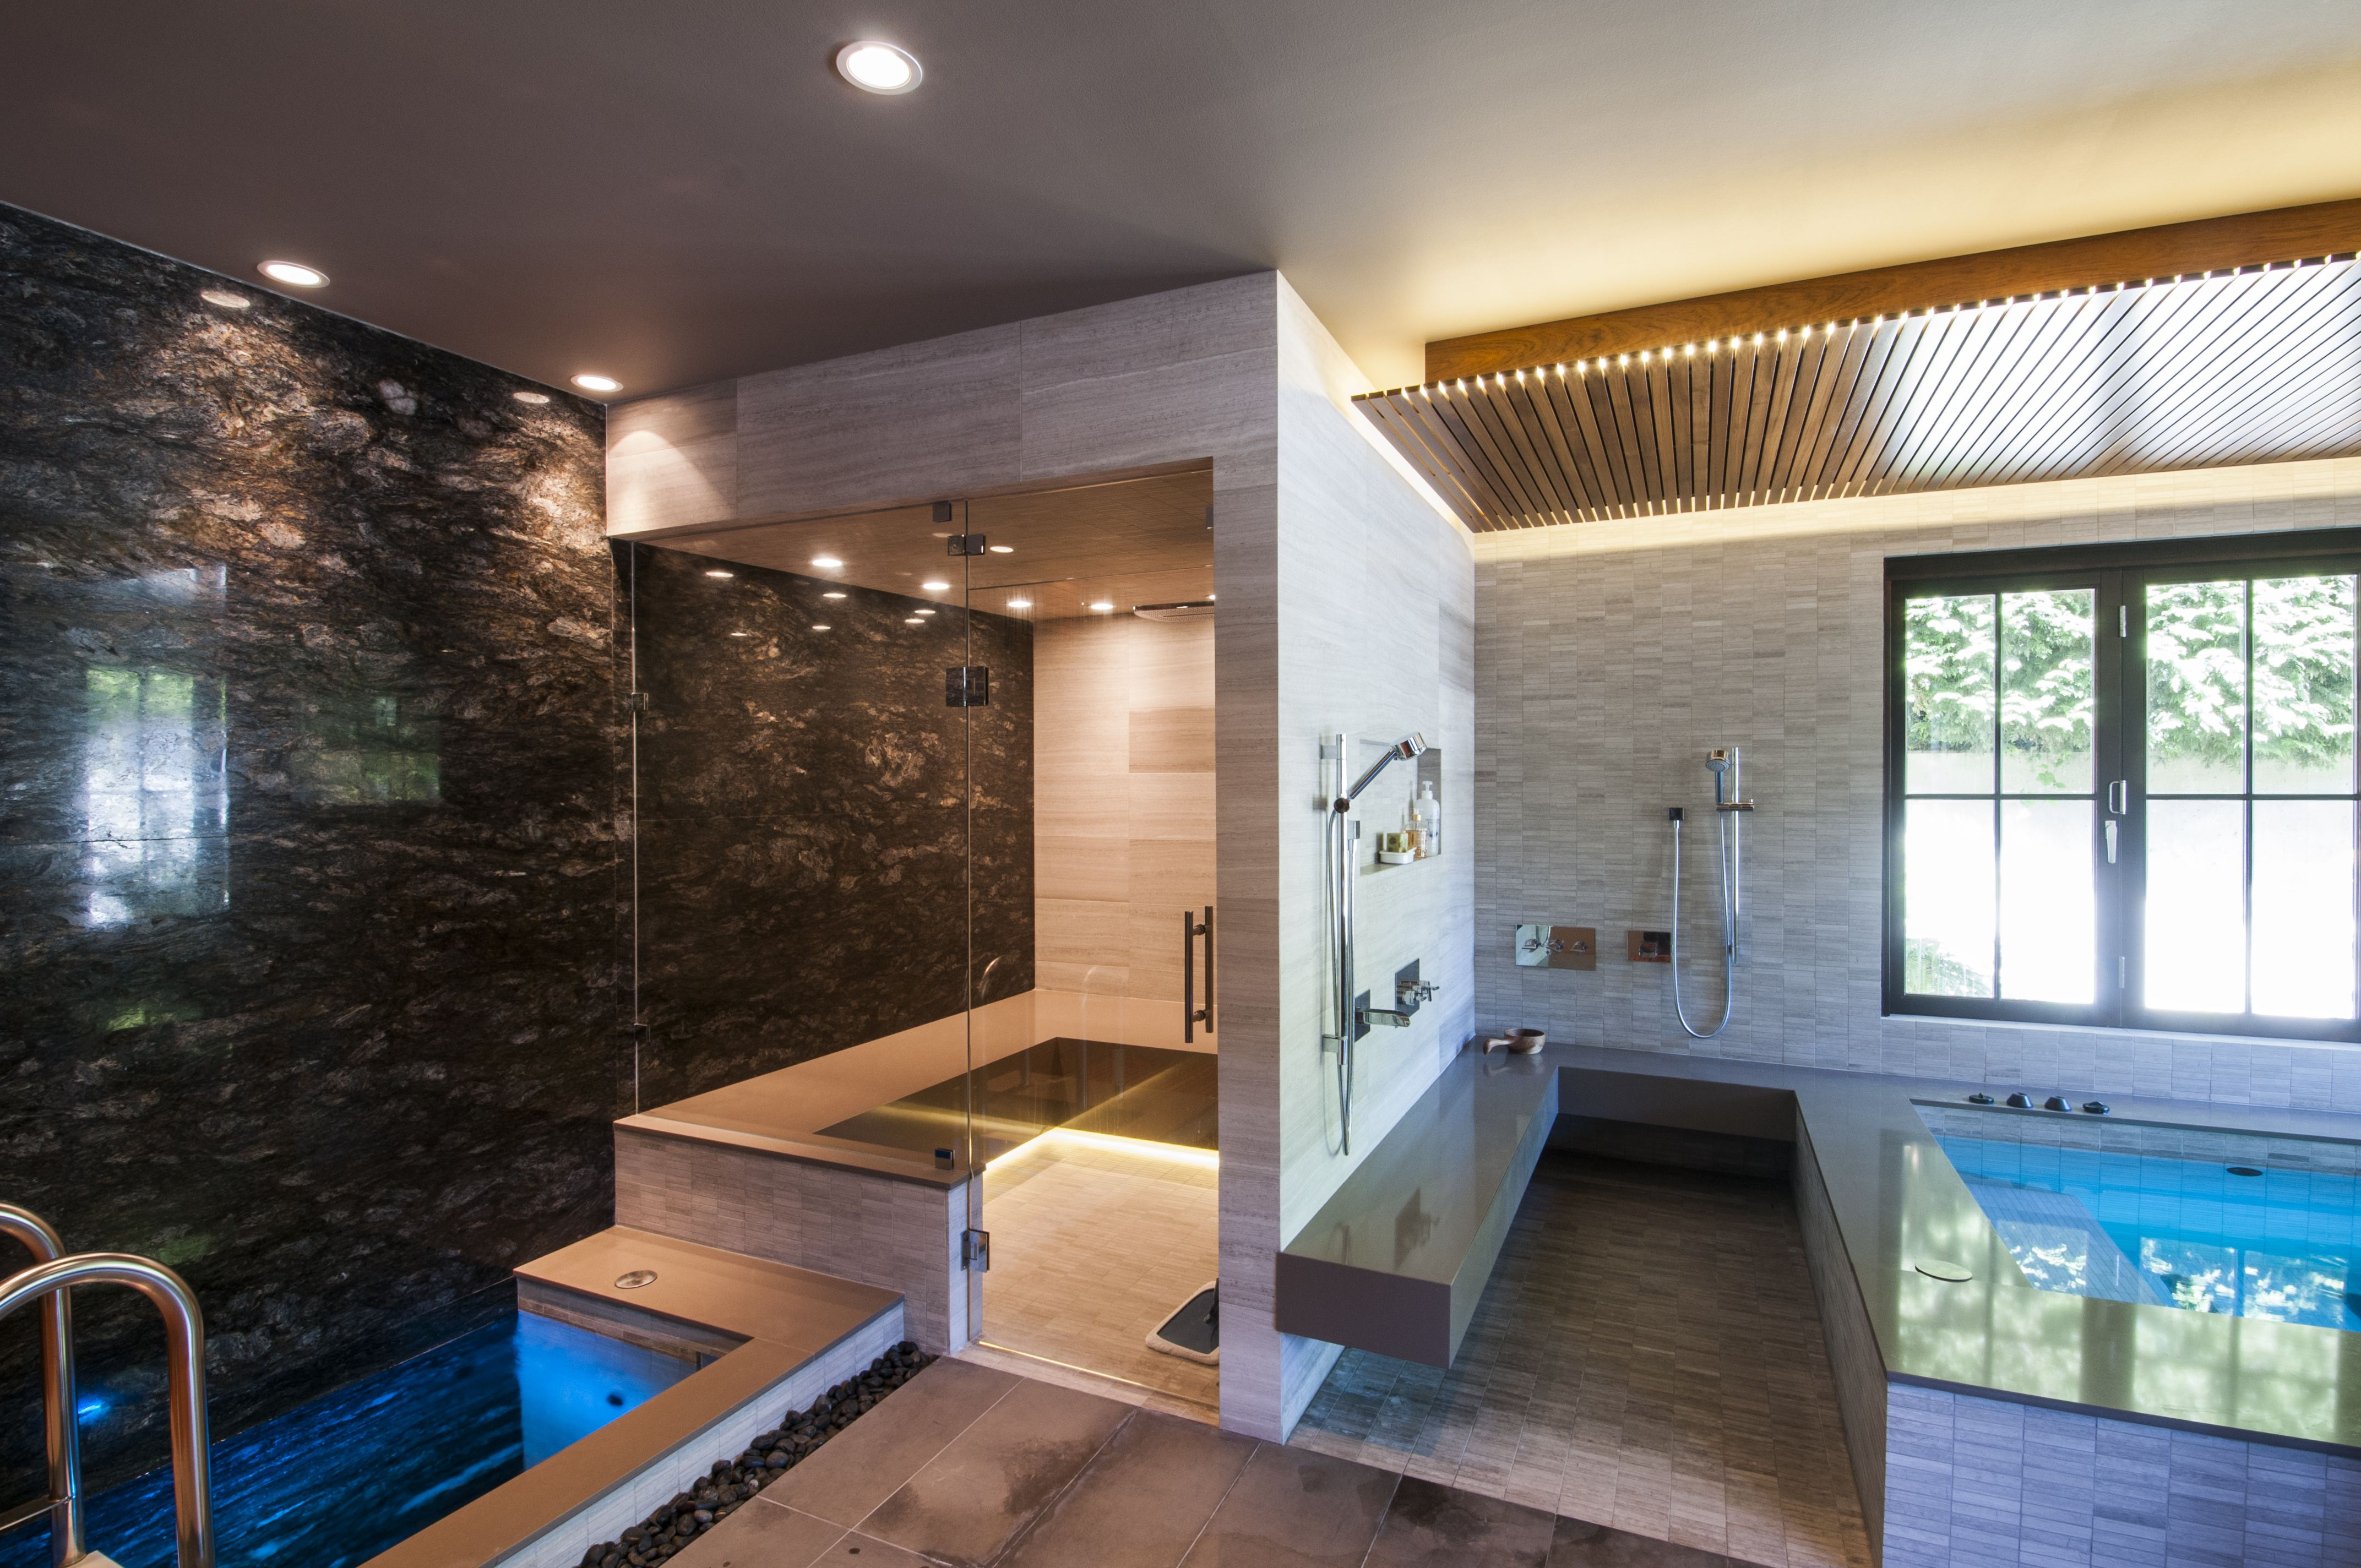 Therapeutic At Home Spa Features A Cold Plunge Pool Hot Tub Walk In Showers And Sauna Not Shown At 4 0 Depth The Col Home Spa Room Home Spa Sauna House